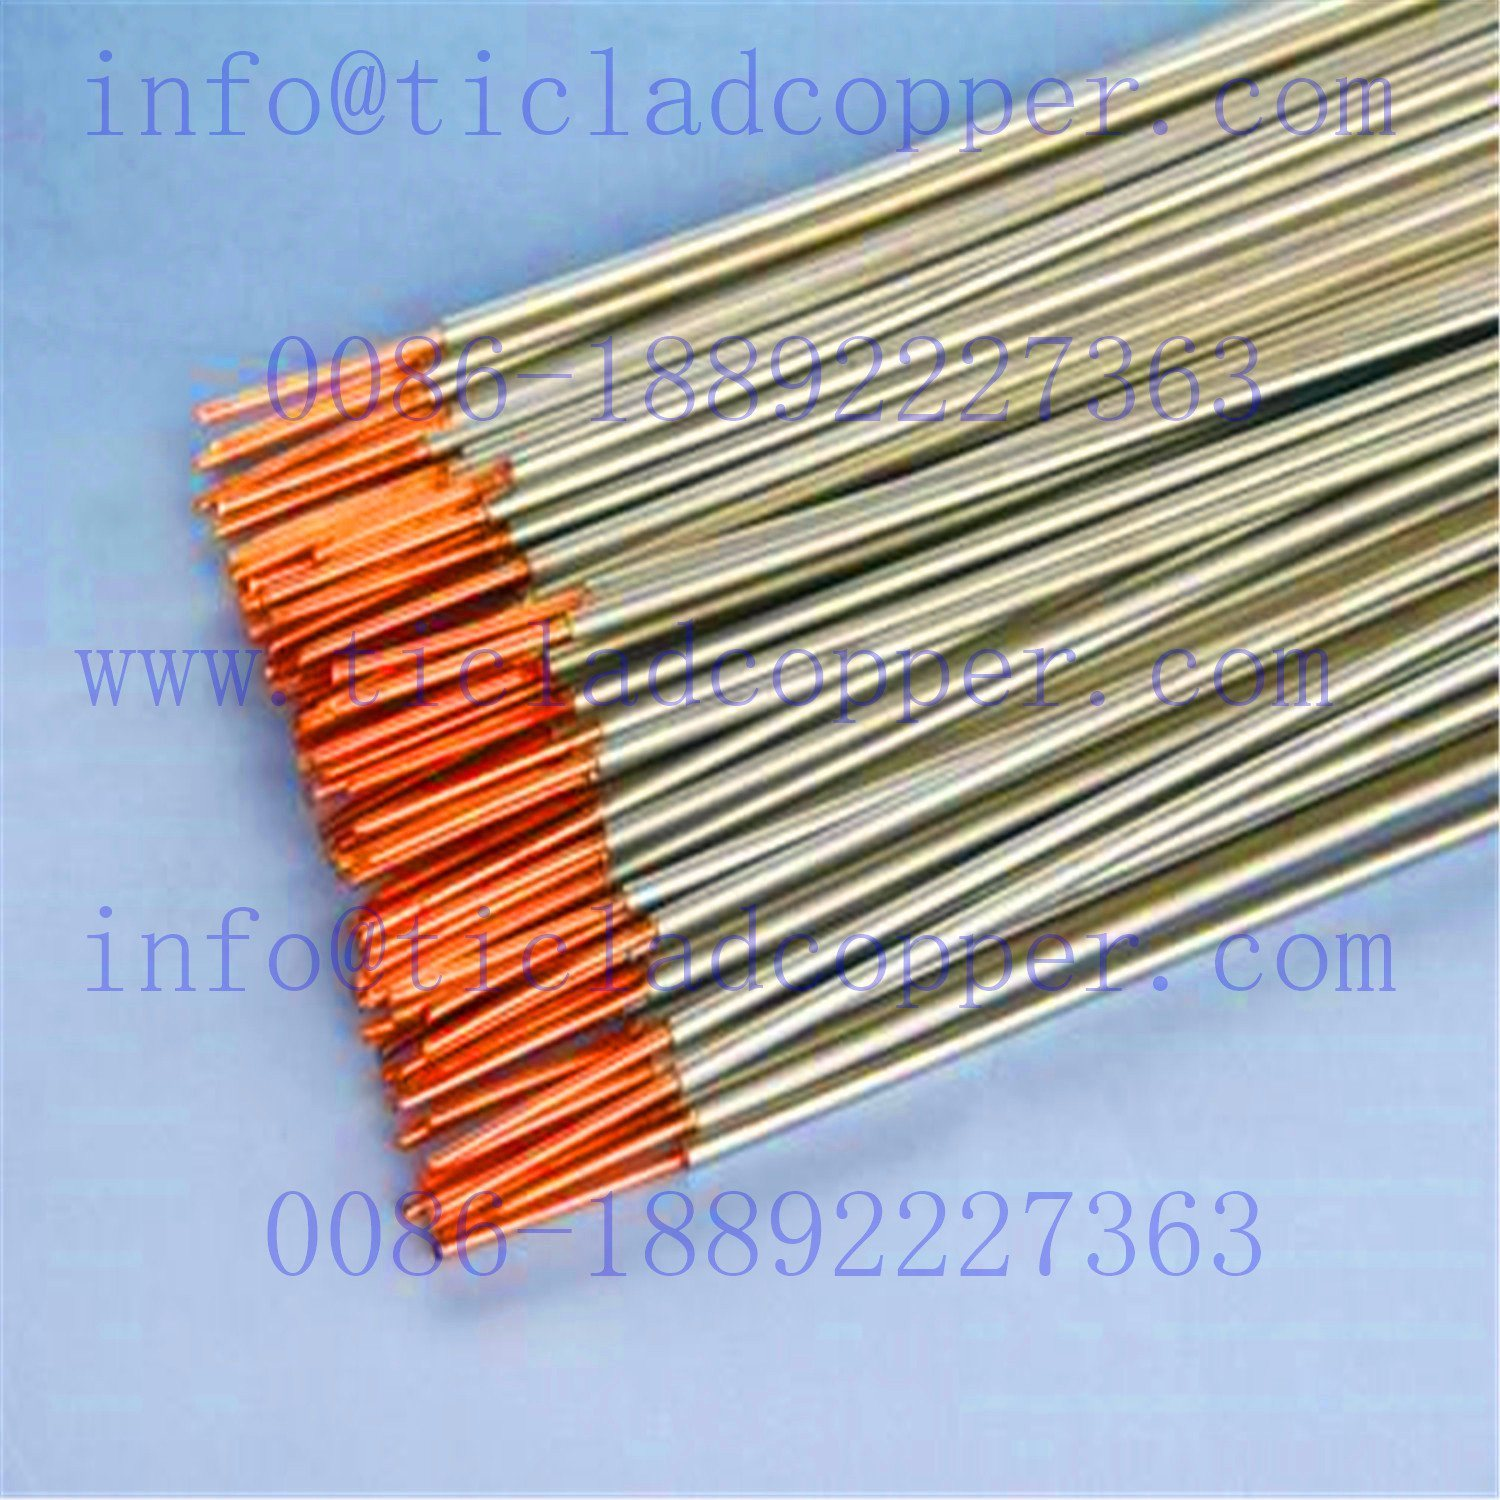 China Insoluble Titanium Clad Copper Wire For Print Circuit Maker